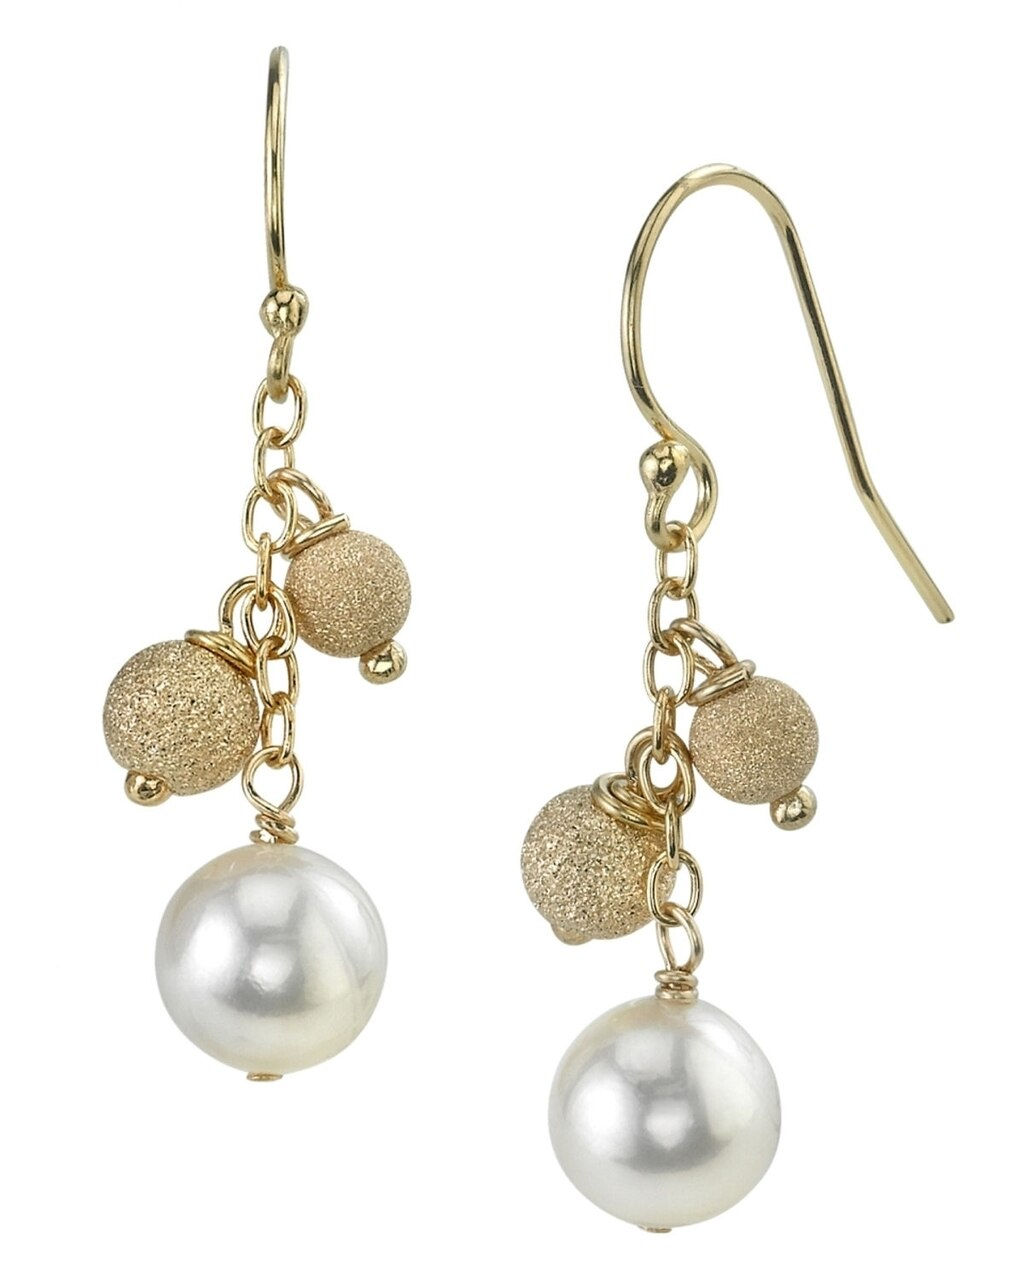 Elegant dangle earrings feature two 6.0-6.5mm Japanese Akoya pearls, selected for their luminous luster